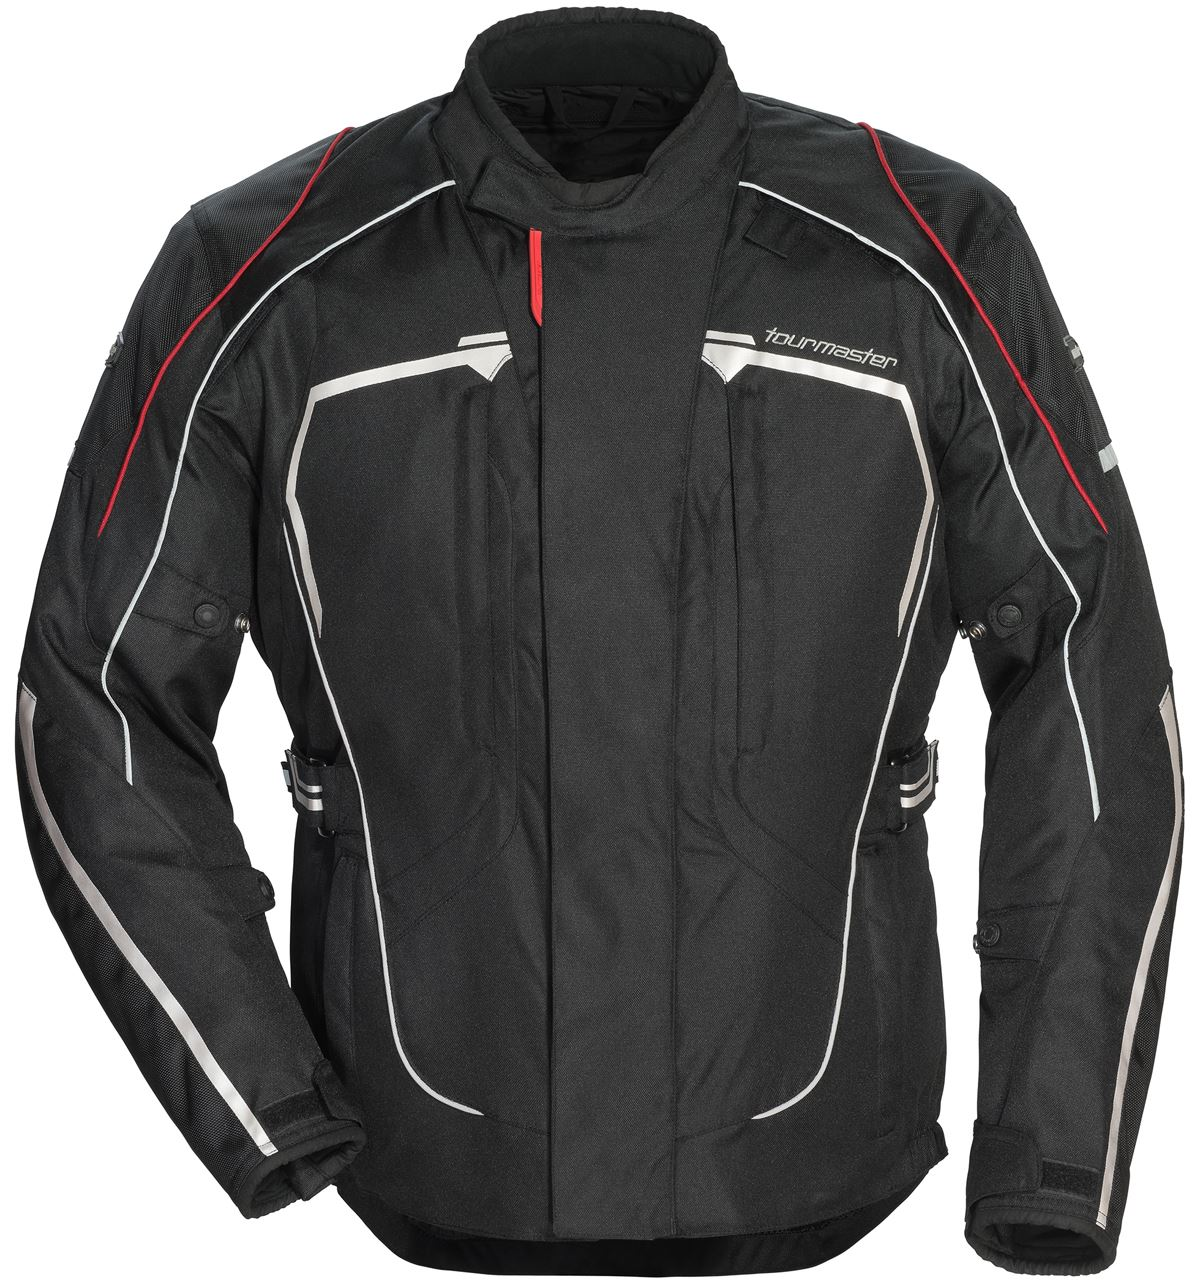 Tourmaster Advanced Motorcycle Jacket Mild to Cold Weather Waterproof